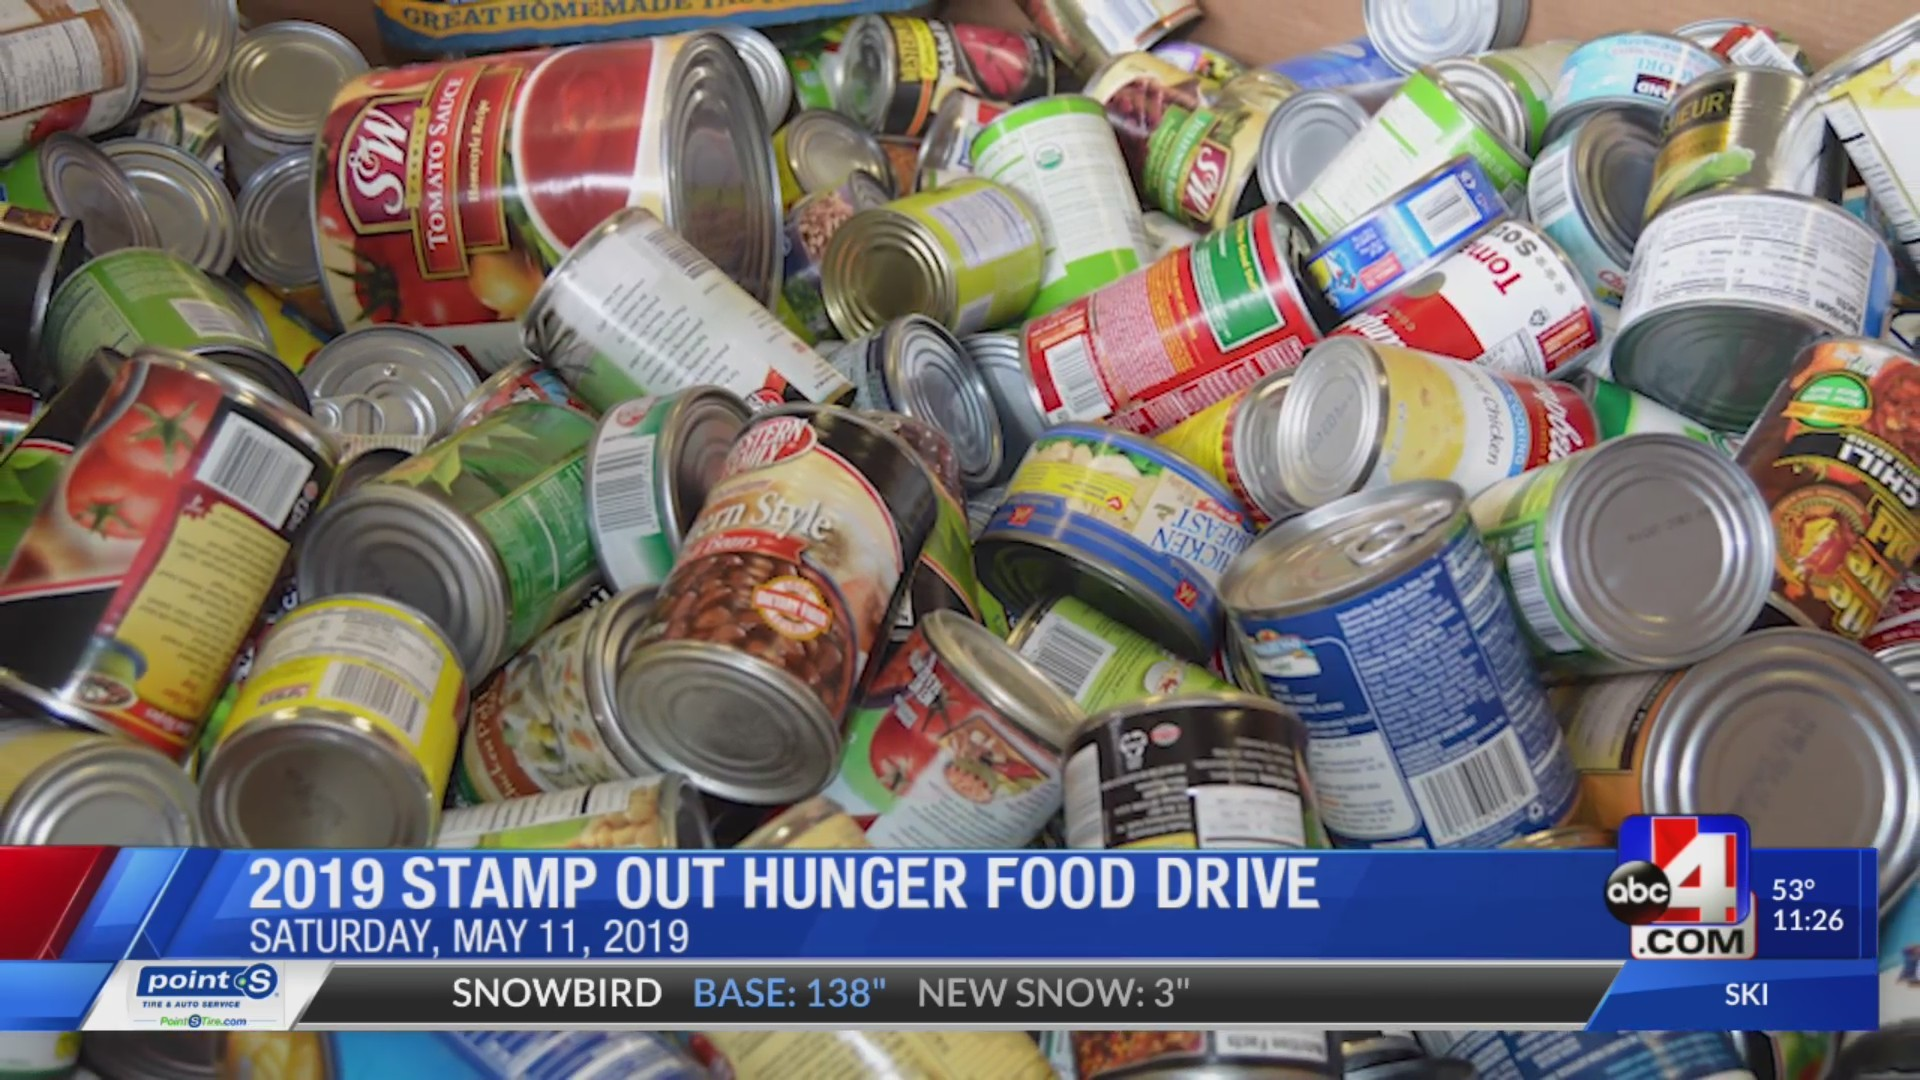 Stamp Out Hunger Food Drive 2019